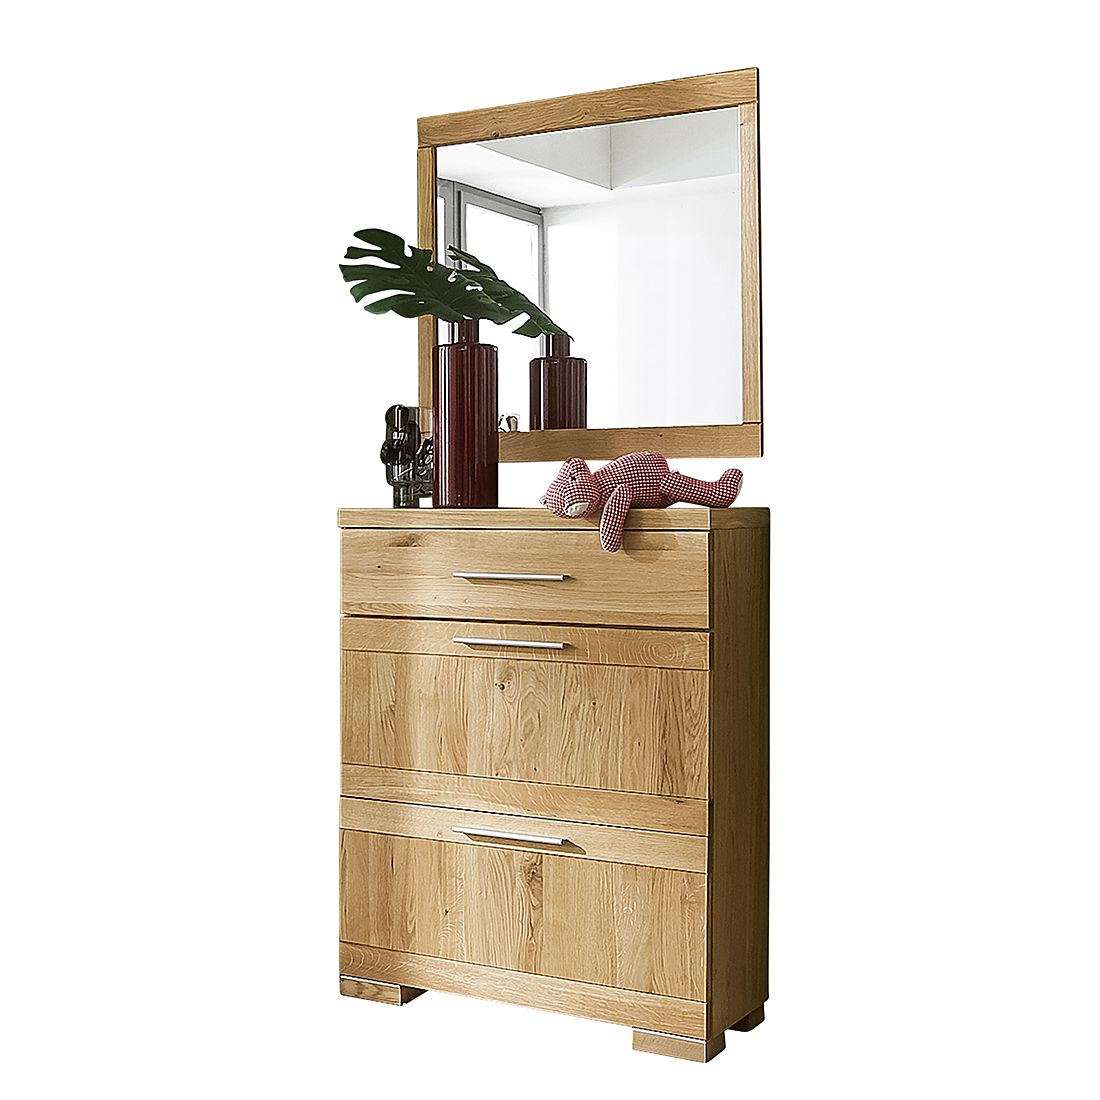 wandspiegel bovino wildeiche massiv ars natura g nstig bestellen. Black Bedroom Furniture Sets. Home Design Ideas